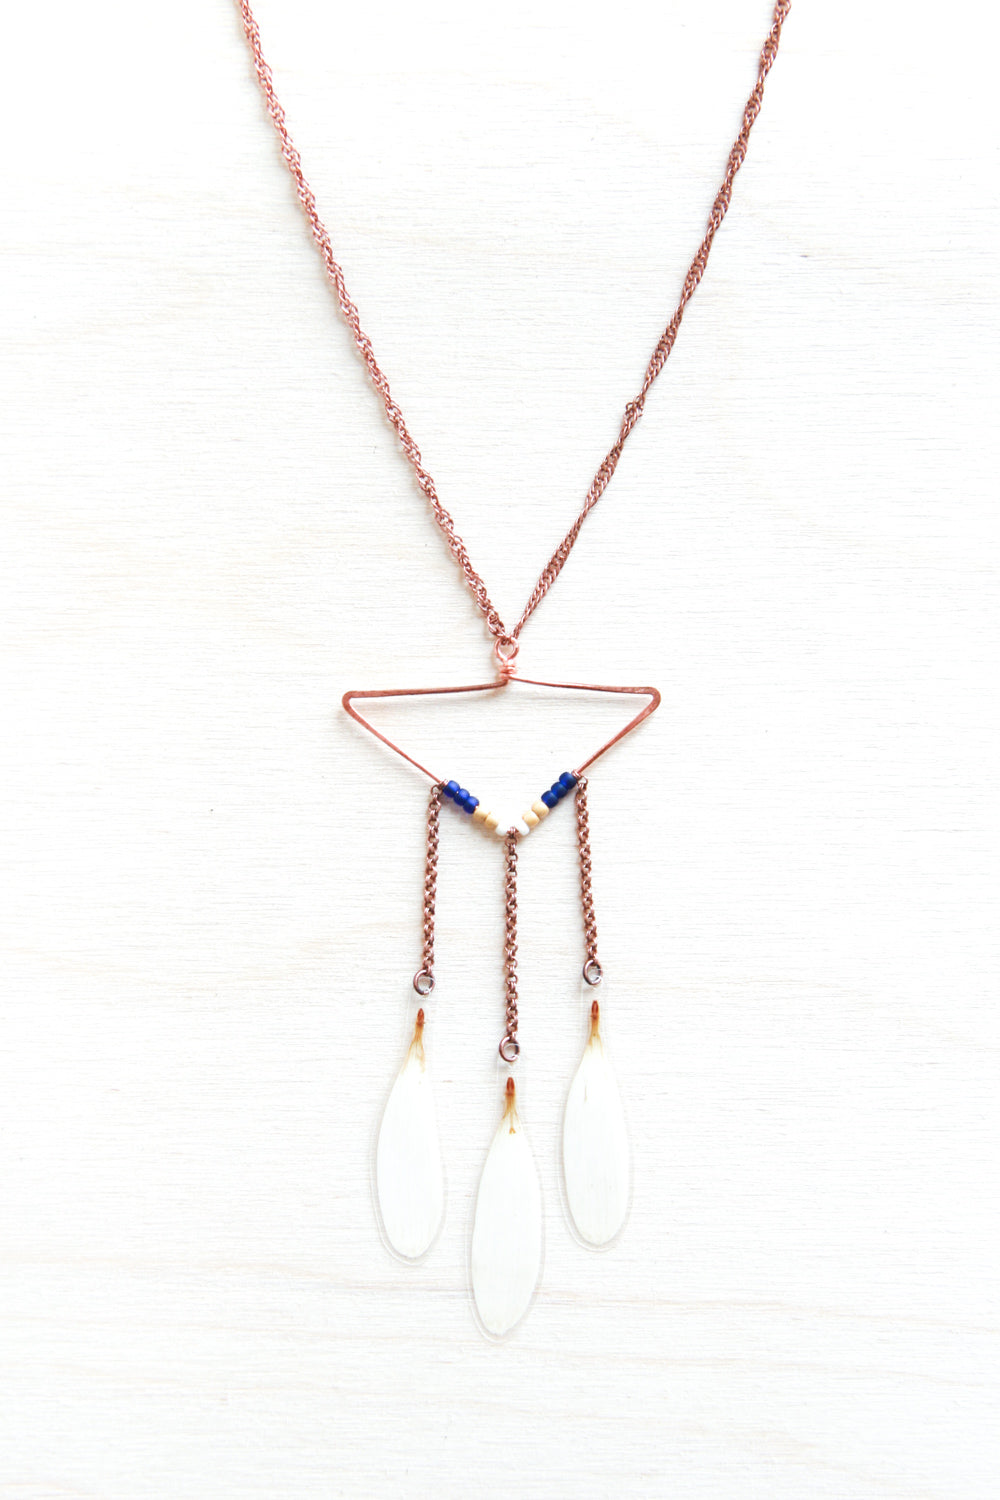 White Shasta Daisy Petal Necklace with Copper Triangle Hoop & Navy Beads